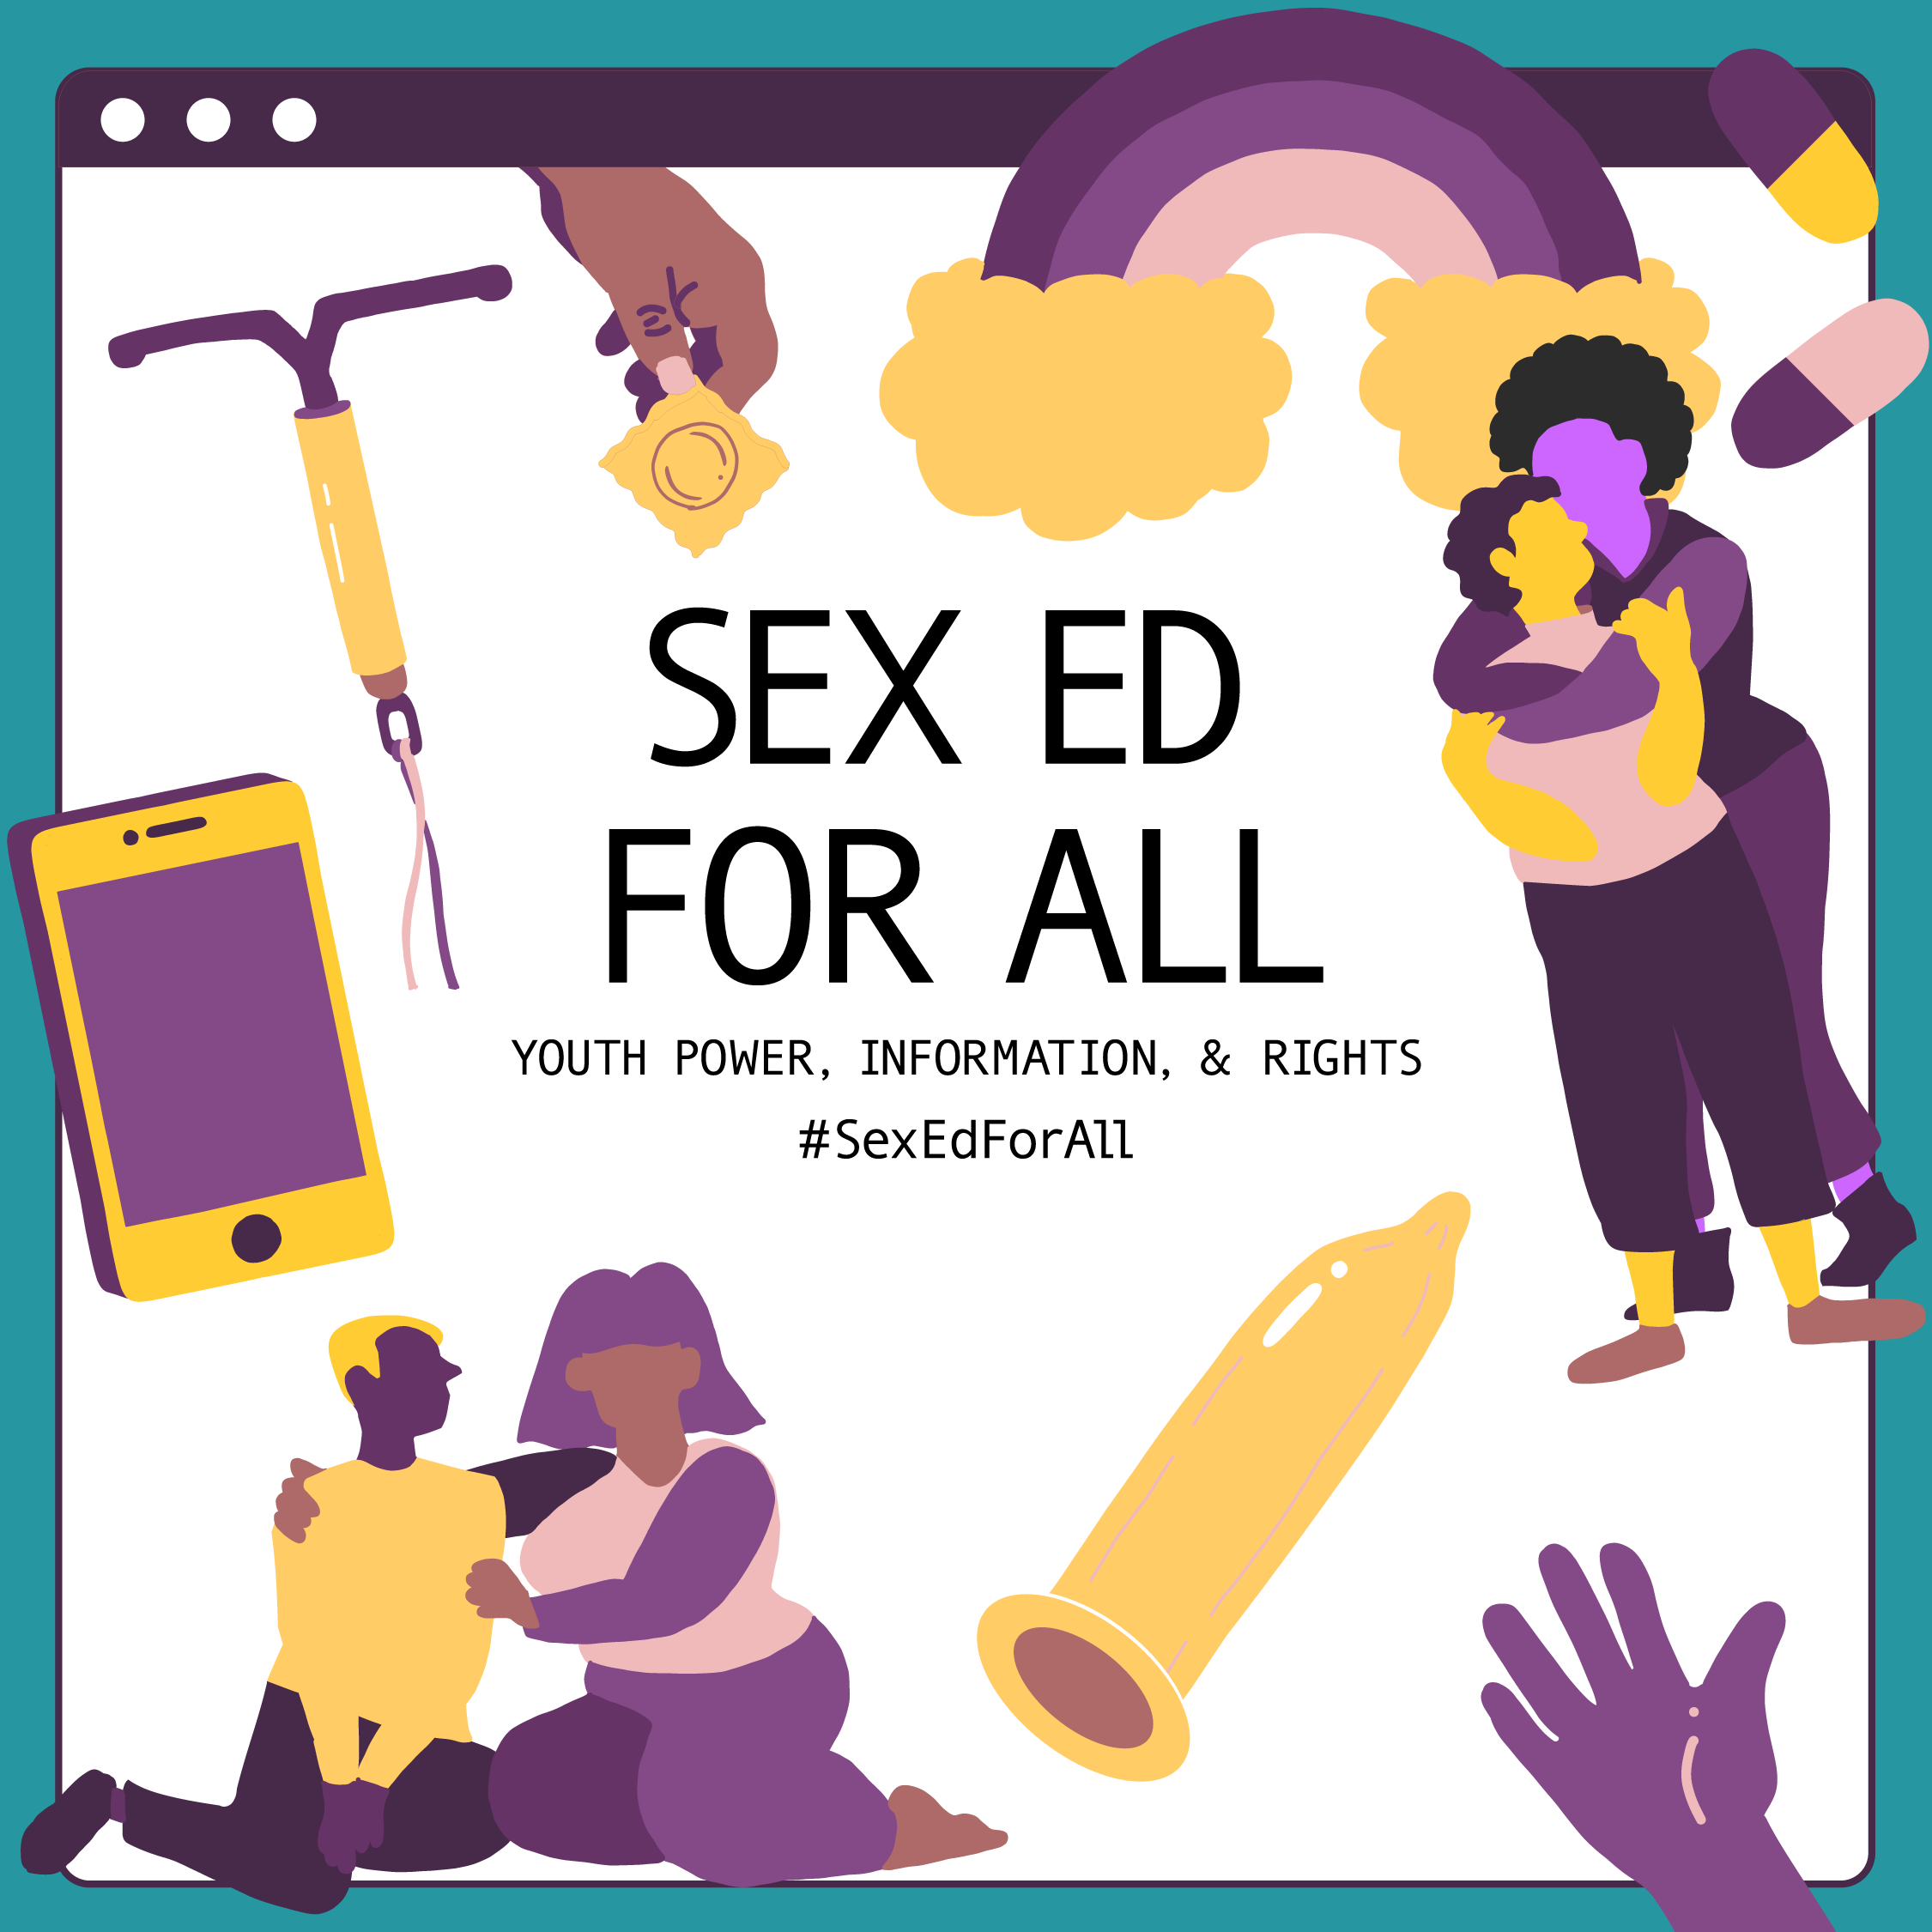 Images of IUD, condom, rainbow, couples, around title Sex Ed for All